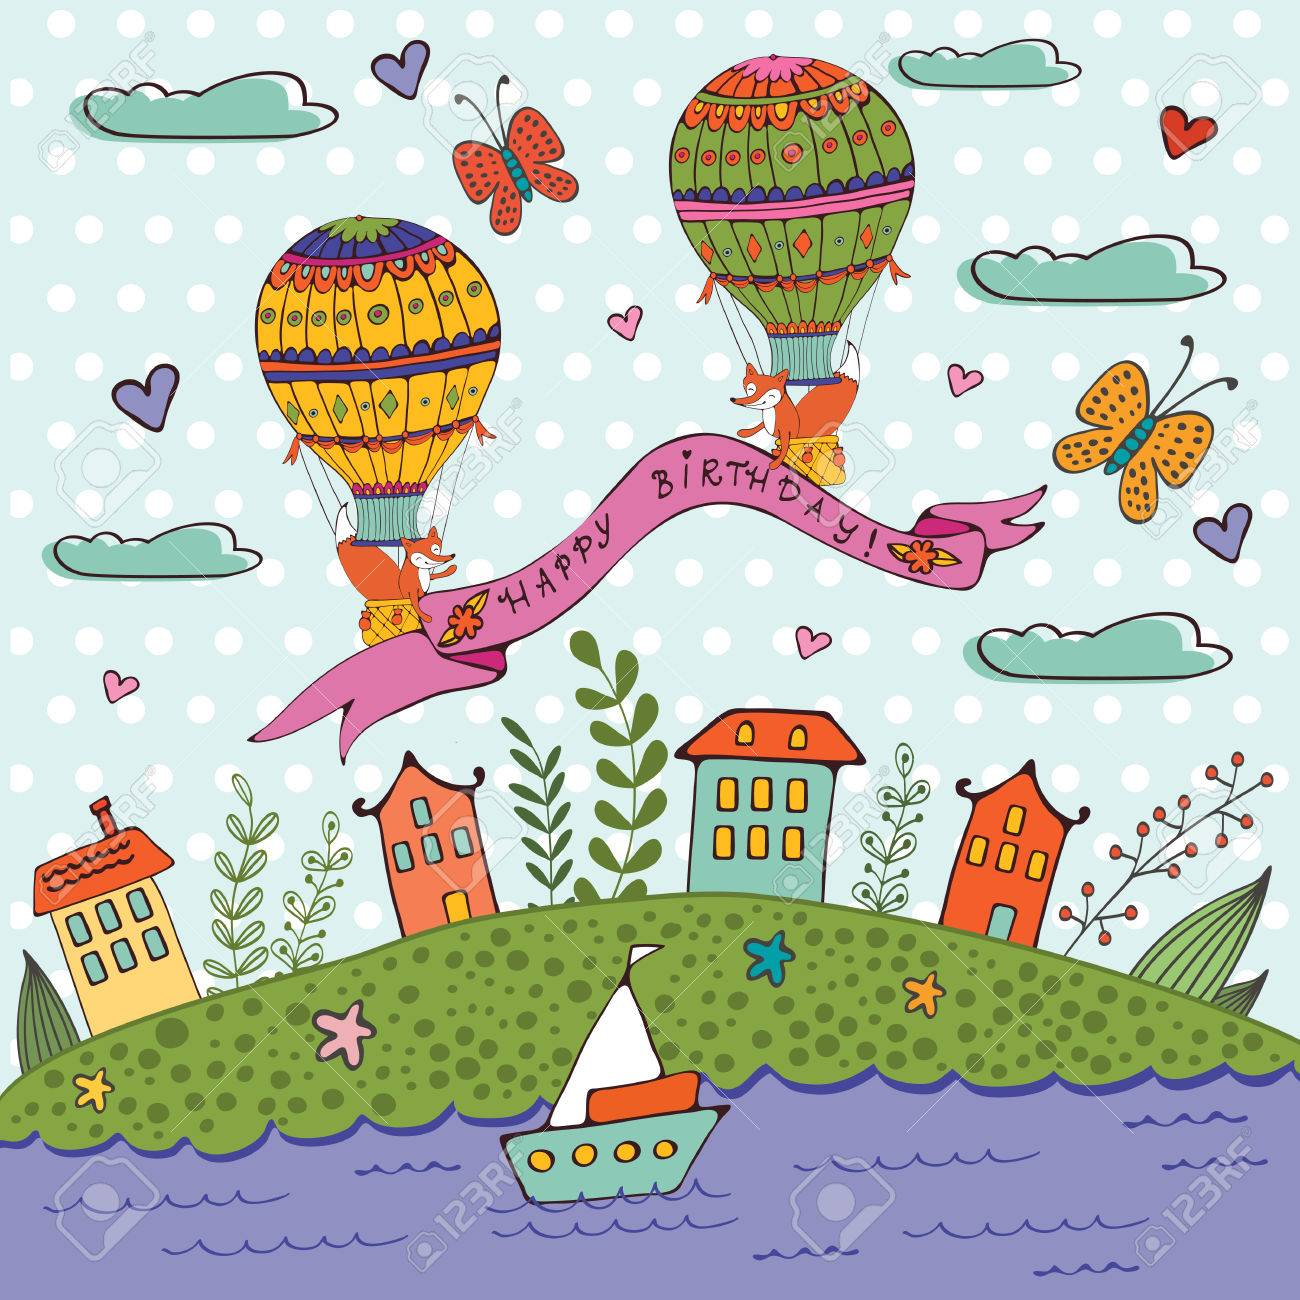 Happy birthday card with hot air balloons and houses illustration happy birthday card with hot air balloons and houses illustration in vector format stock vector bookmarktalkfo Image collections